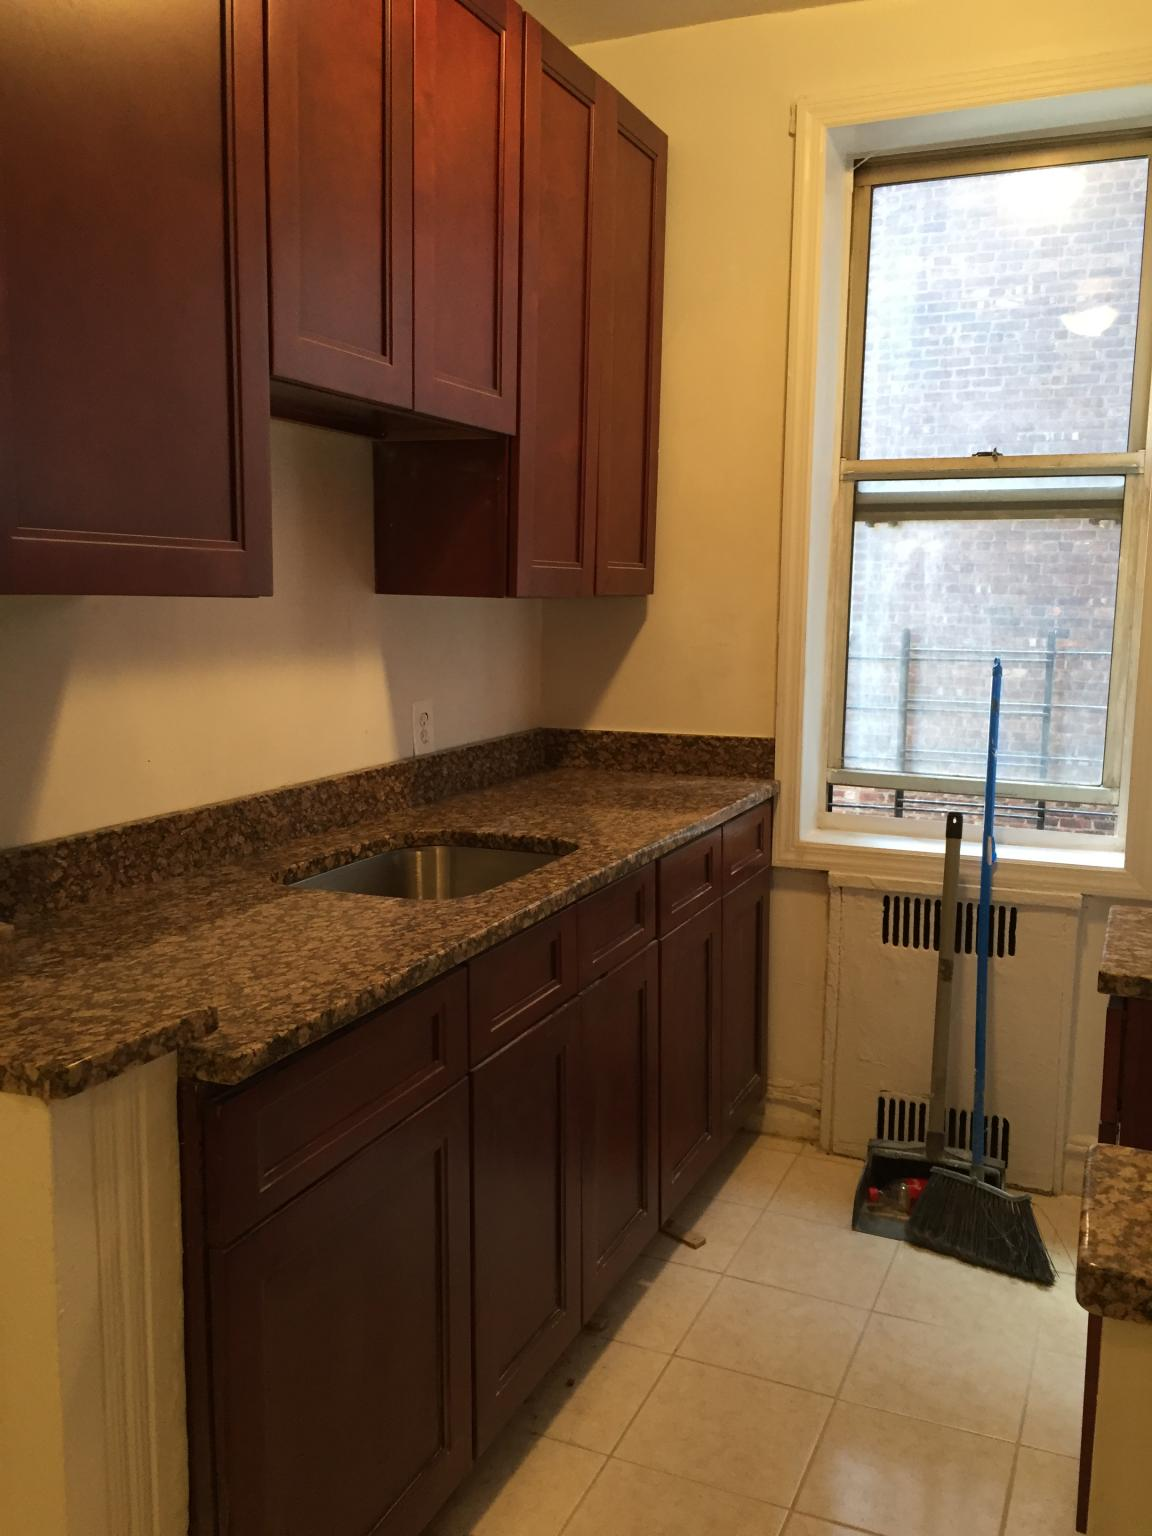 50 Lefferts Ave #1A For Rent - Brooklyn, NY | Trulia